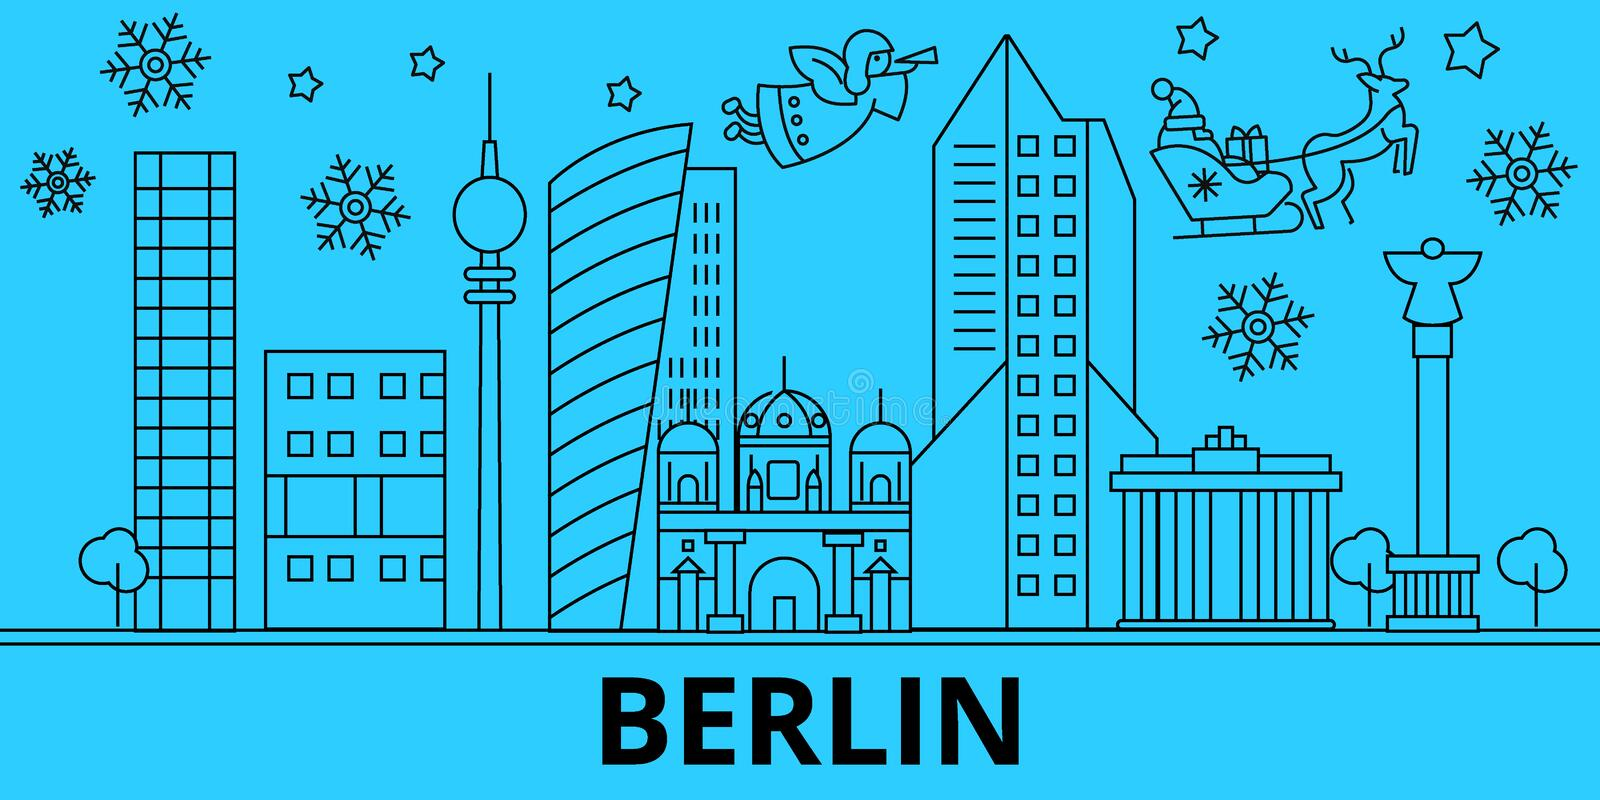 Germany, Berlin winter holidays skyline. Merry Christmas, Happy New Year decorated banner with Santa Claus.Germany vector illustration